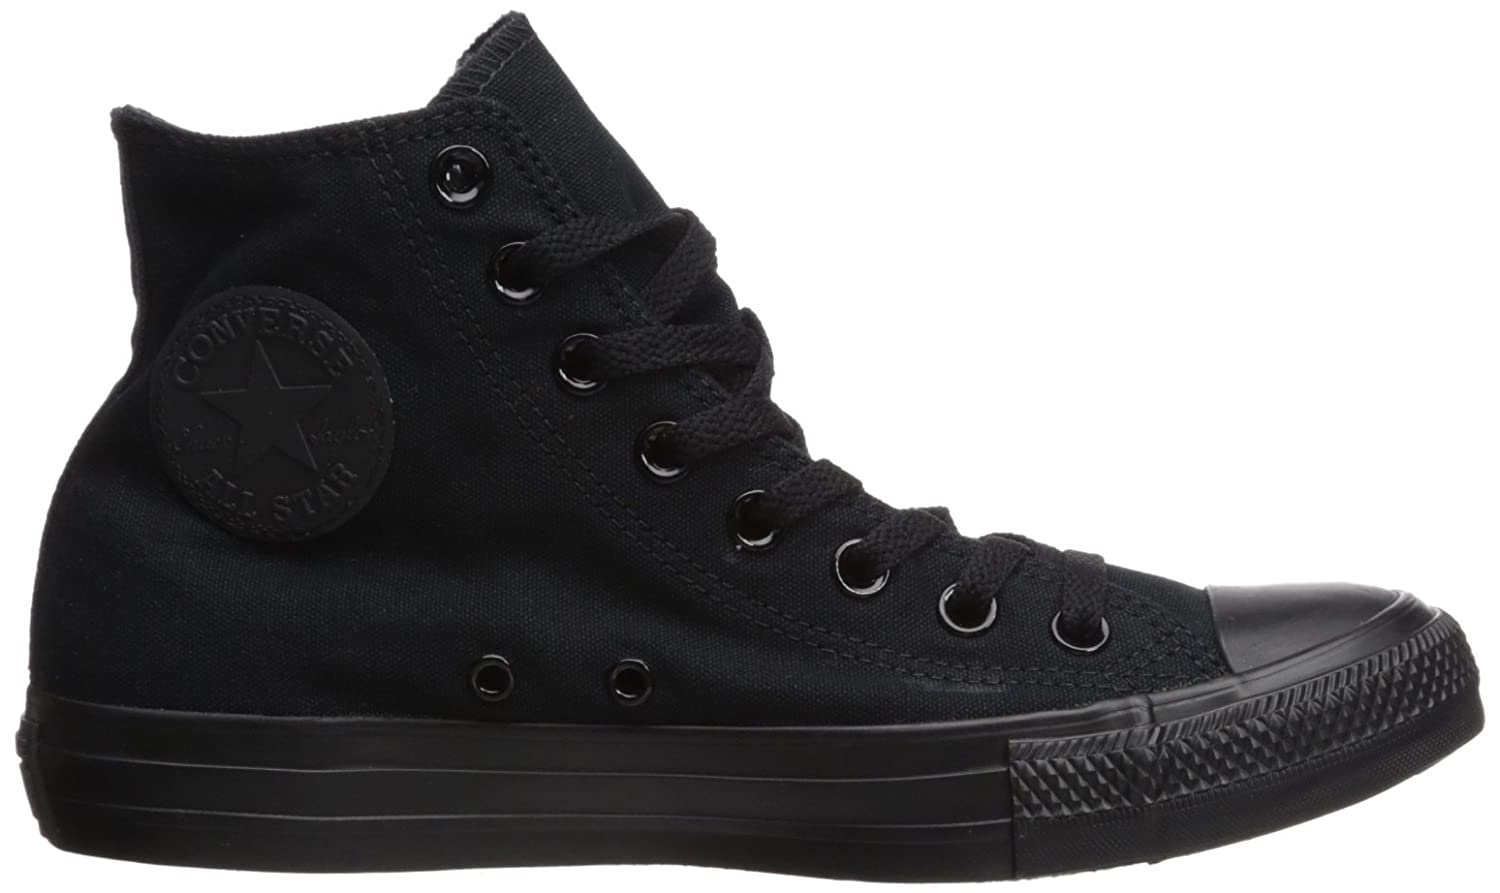 Converse Chuck Taylor All Star High Top Hiking B007TMYMAQ Trekking & Hiking Top 97a59b